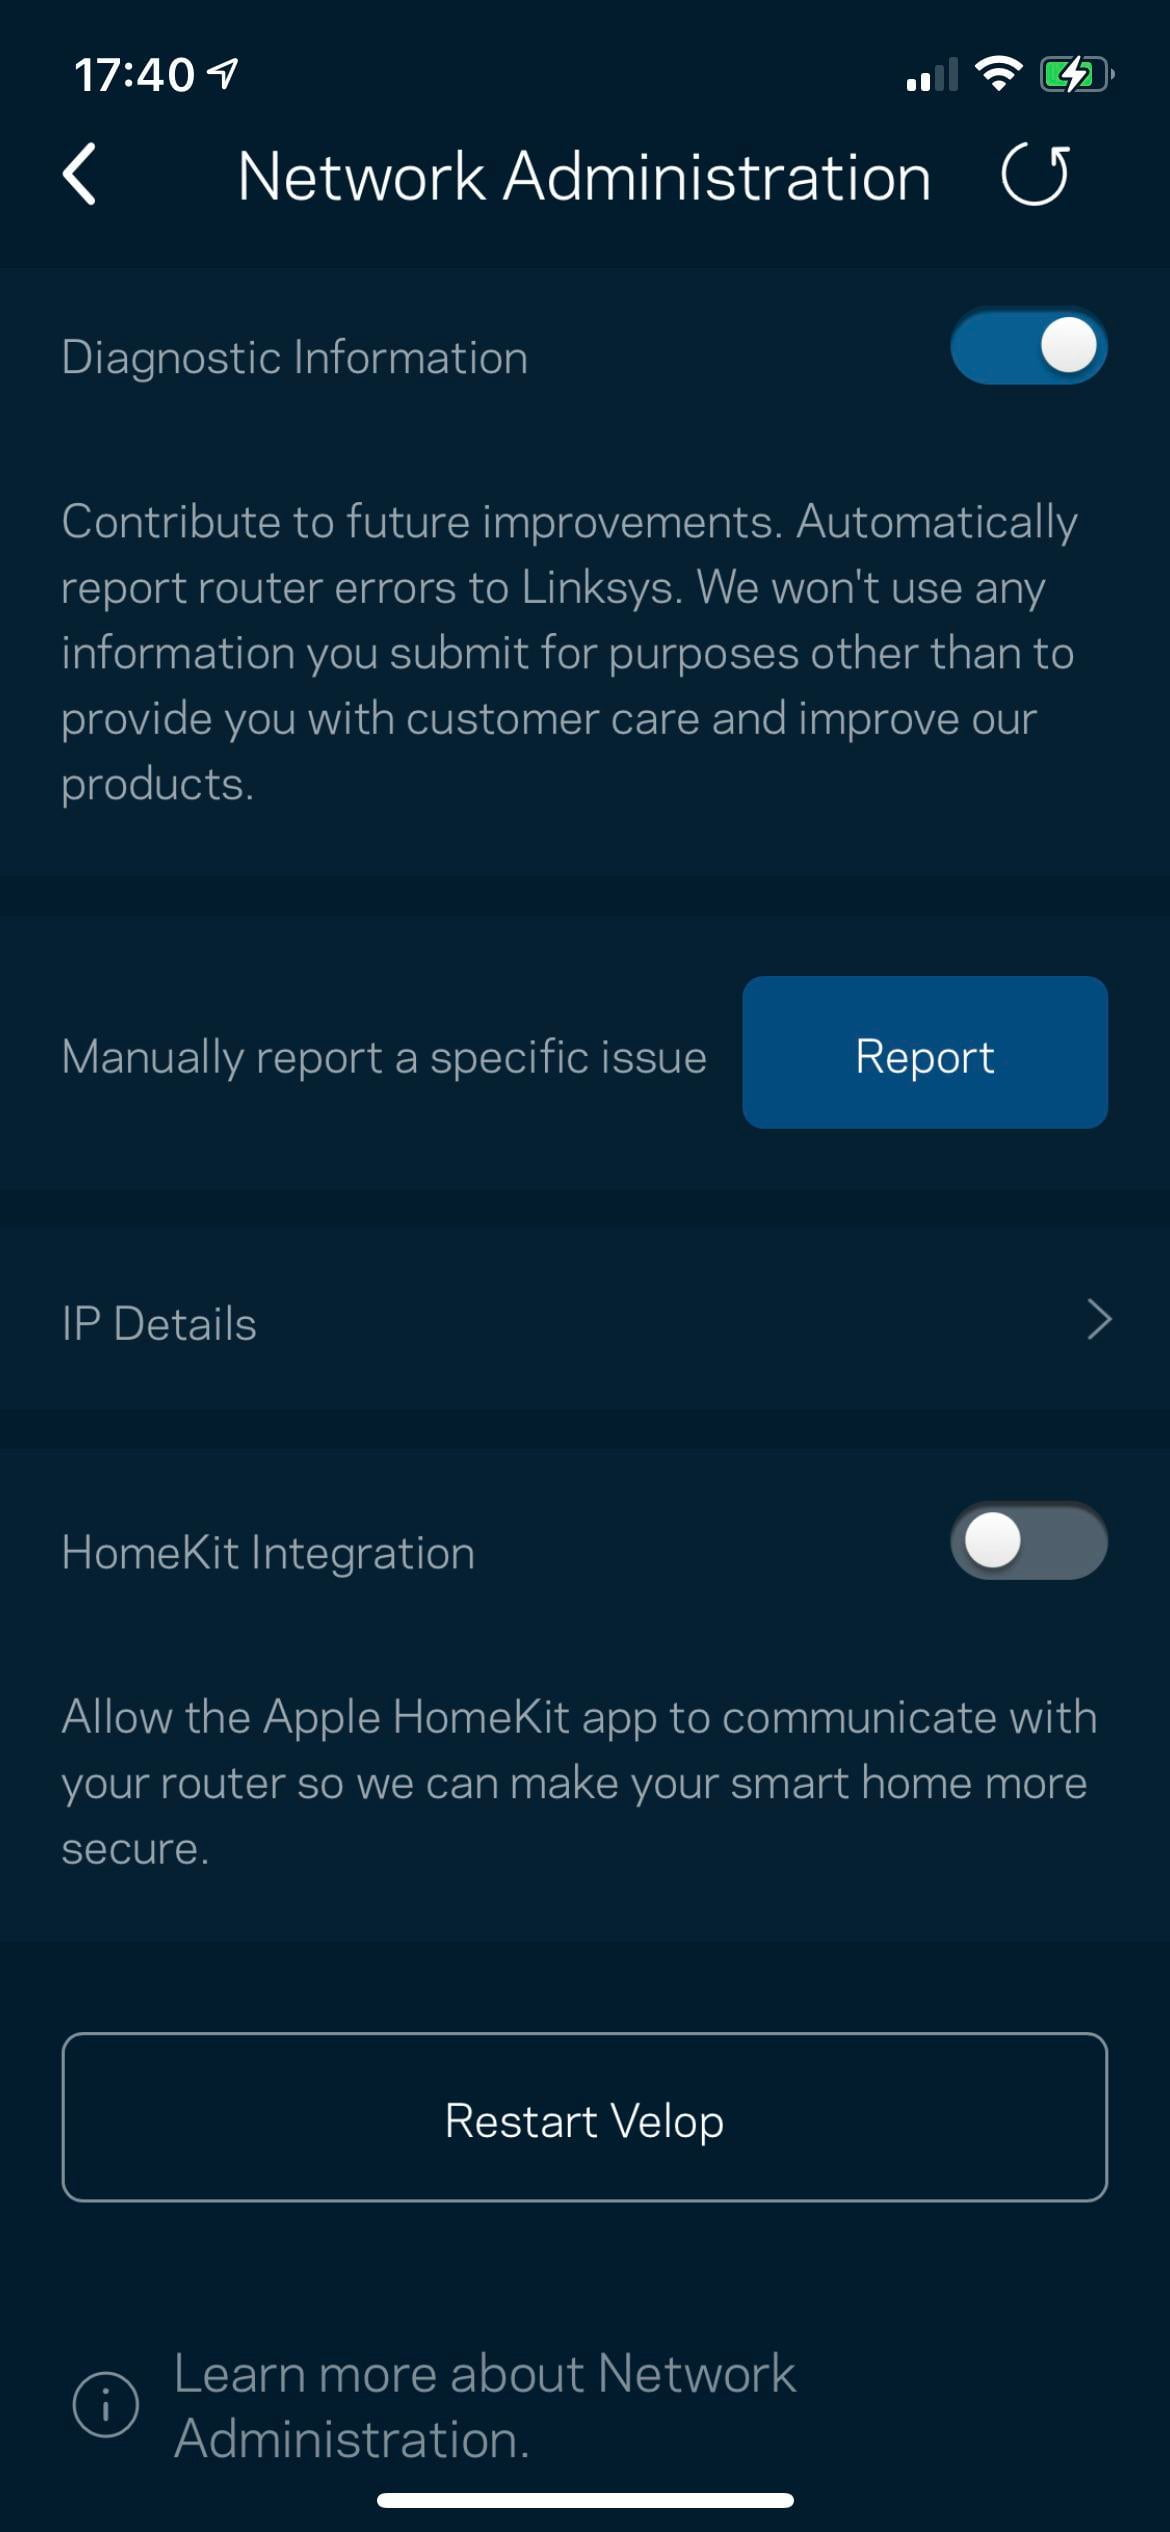 PSA Disable HomeKit Integration if you use Linksys Velop in